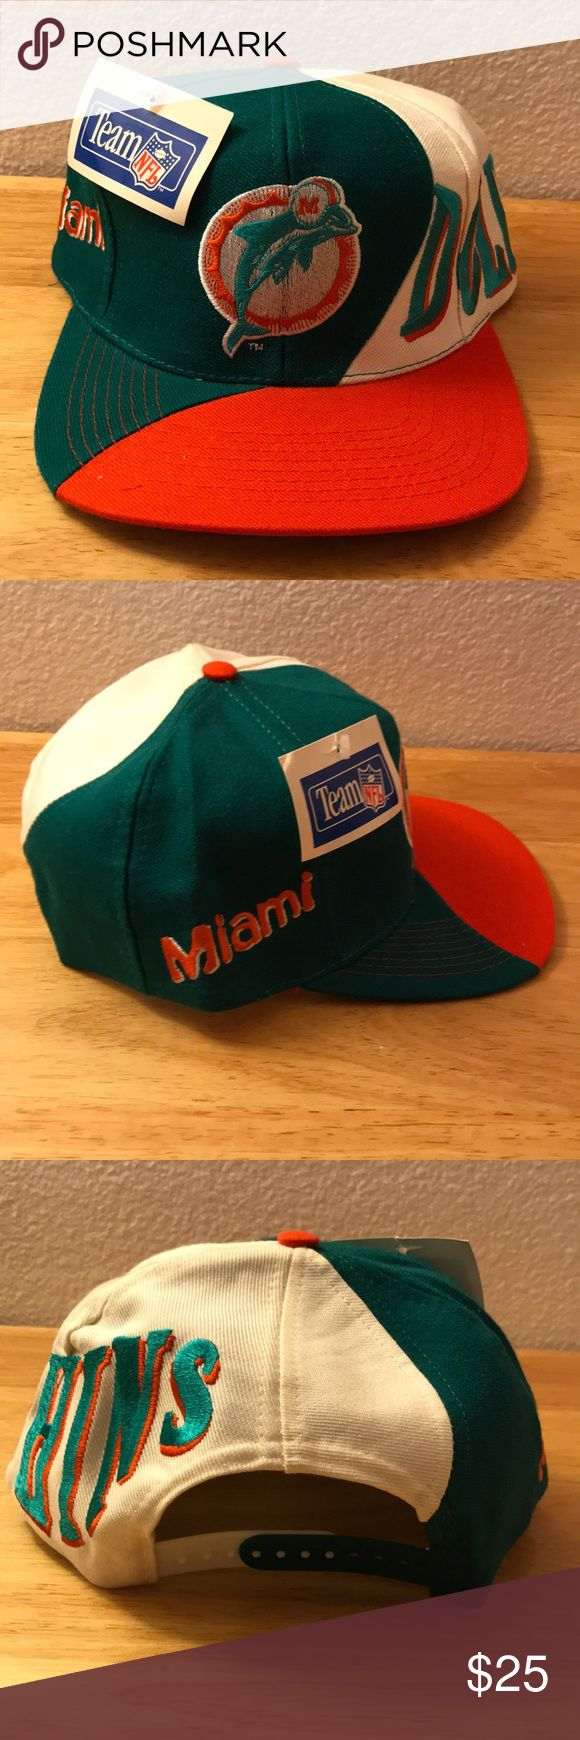 Vintage NFL Miami Dolphins Hat Vintage NFL Miami Dolphins Hat, Brand New, Never Worn or Used, WILL SHIP IN ONE DAYAll bundles of 2 or more receive 20% off. Closet full of new, used and vintage Vans, Skate and surf companies, jewelry, phone cases, shoes and more. NFL Accessories Hats